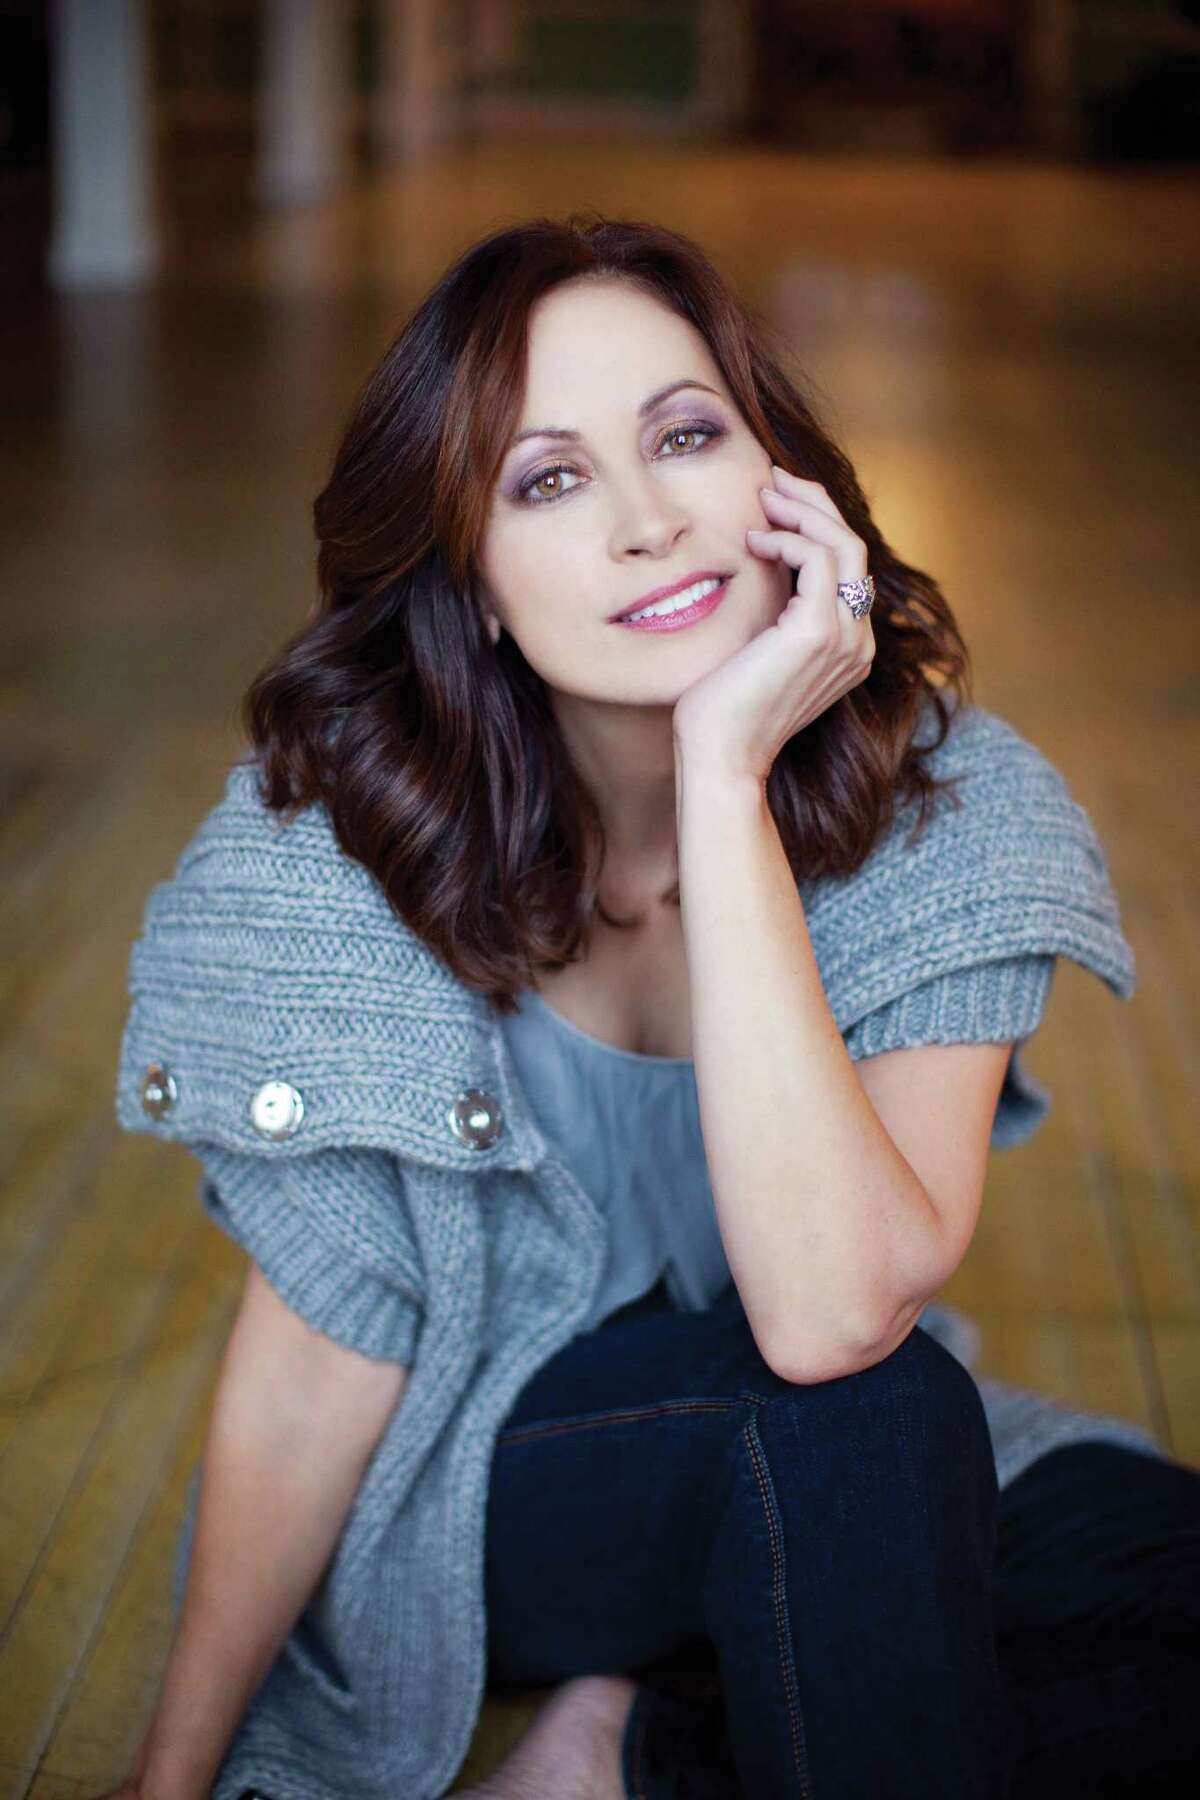 Bad weather has forced Linda Eder's performance to be postponed.